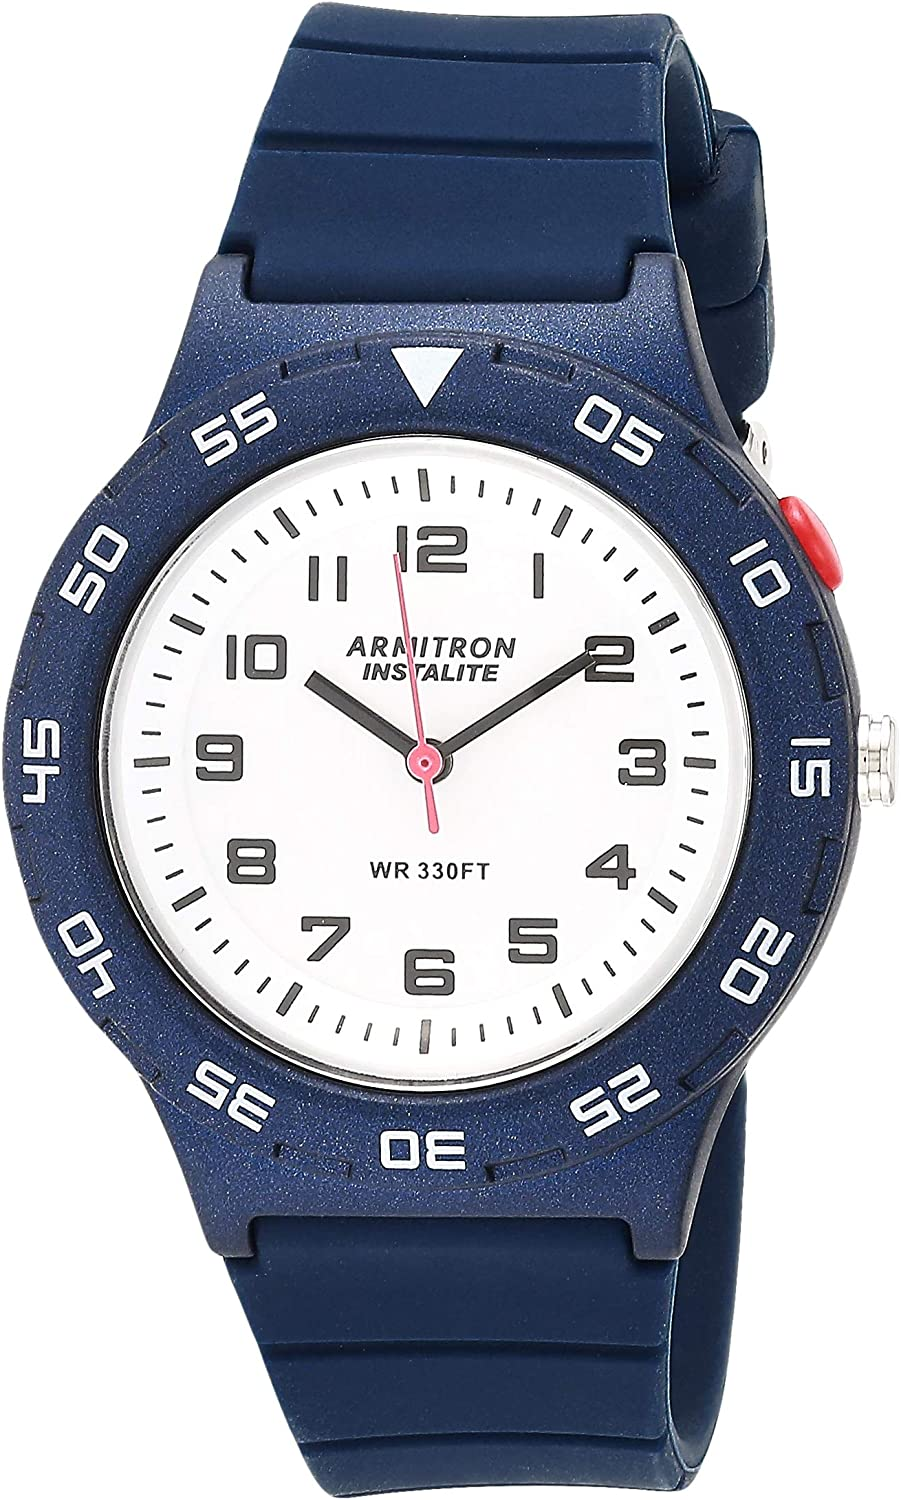 Armitron Sport Unisex Easy Daily bargain sale to Read 6443 Strap 25 Watch Ranking TOP1 Silicone